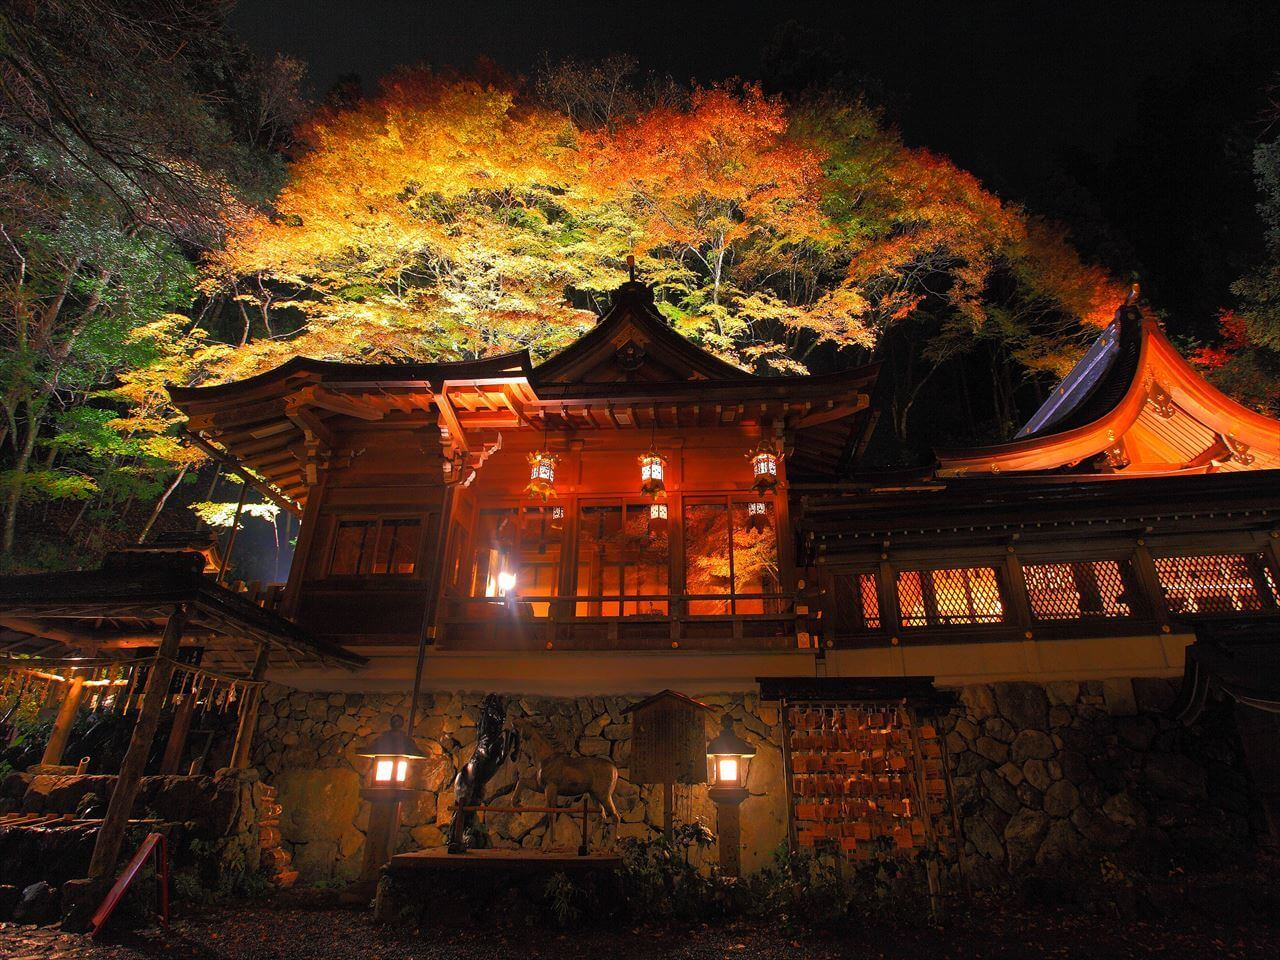 京都 貴船神社 Kyoto Kifune Shrine 紅葉 Autumn color_3